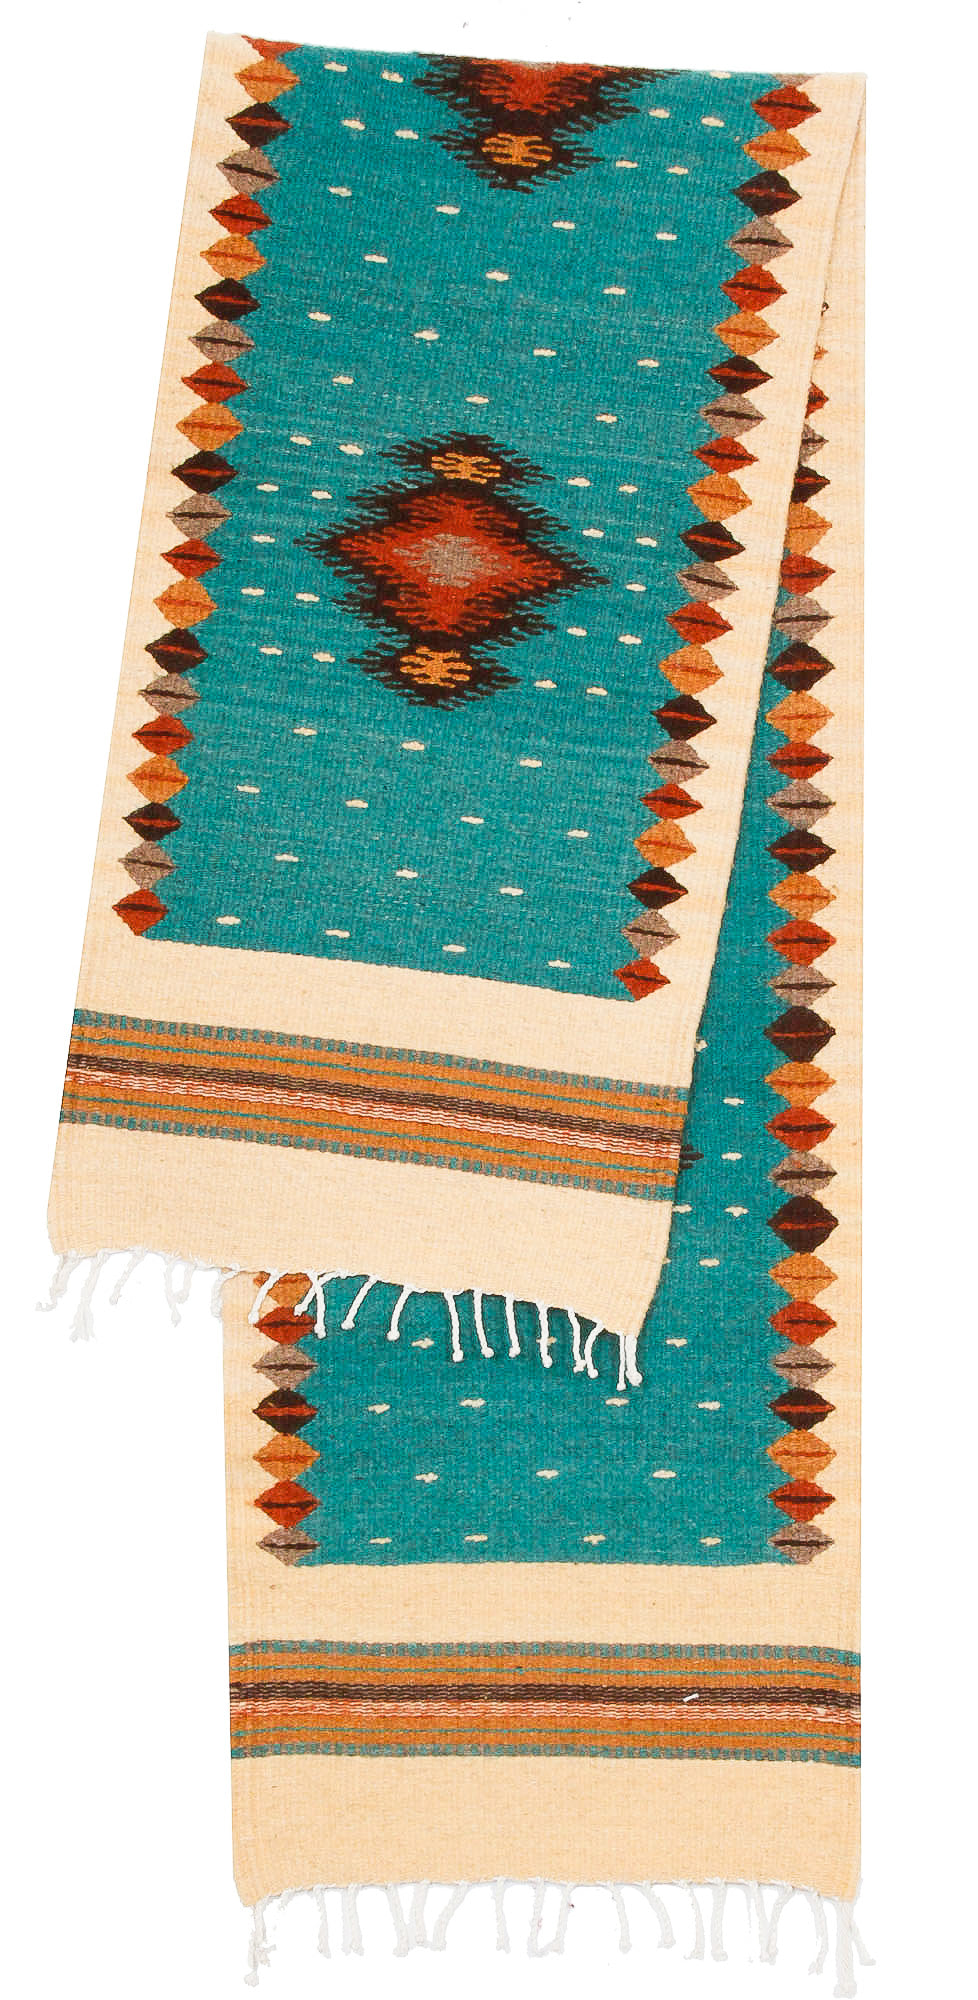 Handwoven Zapotec Indian Table Runner - Soplador Turquoise Wool Oaxacan Textile